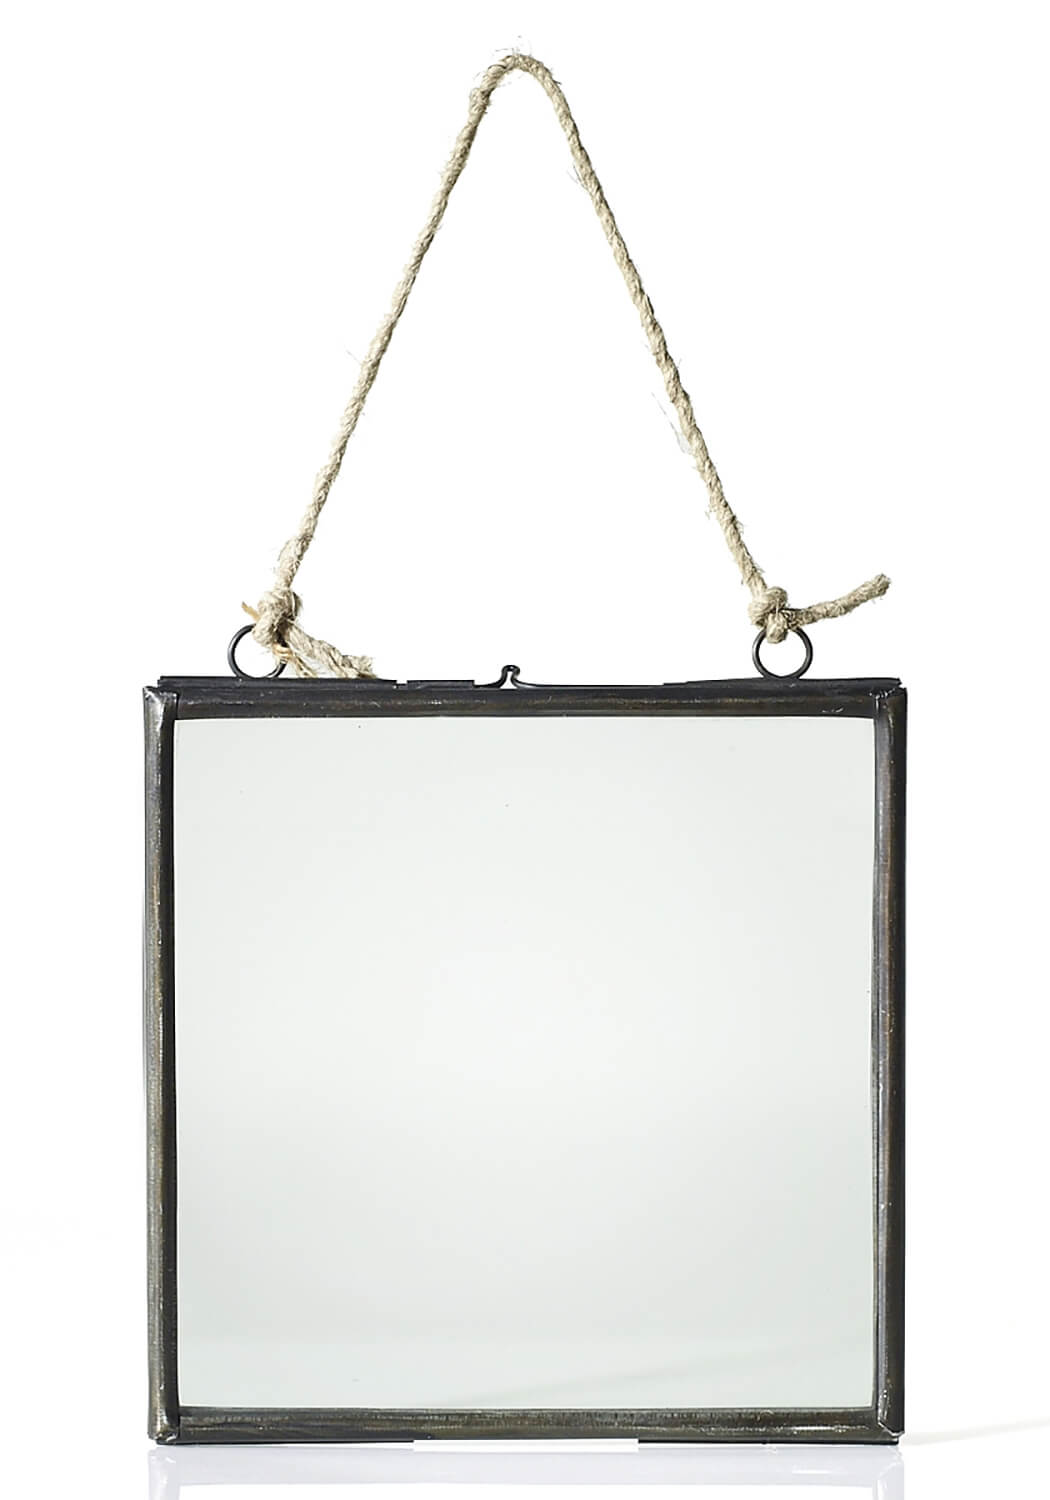 Hanging Metal Double Glass Frame 6x6.5